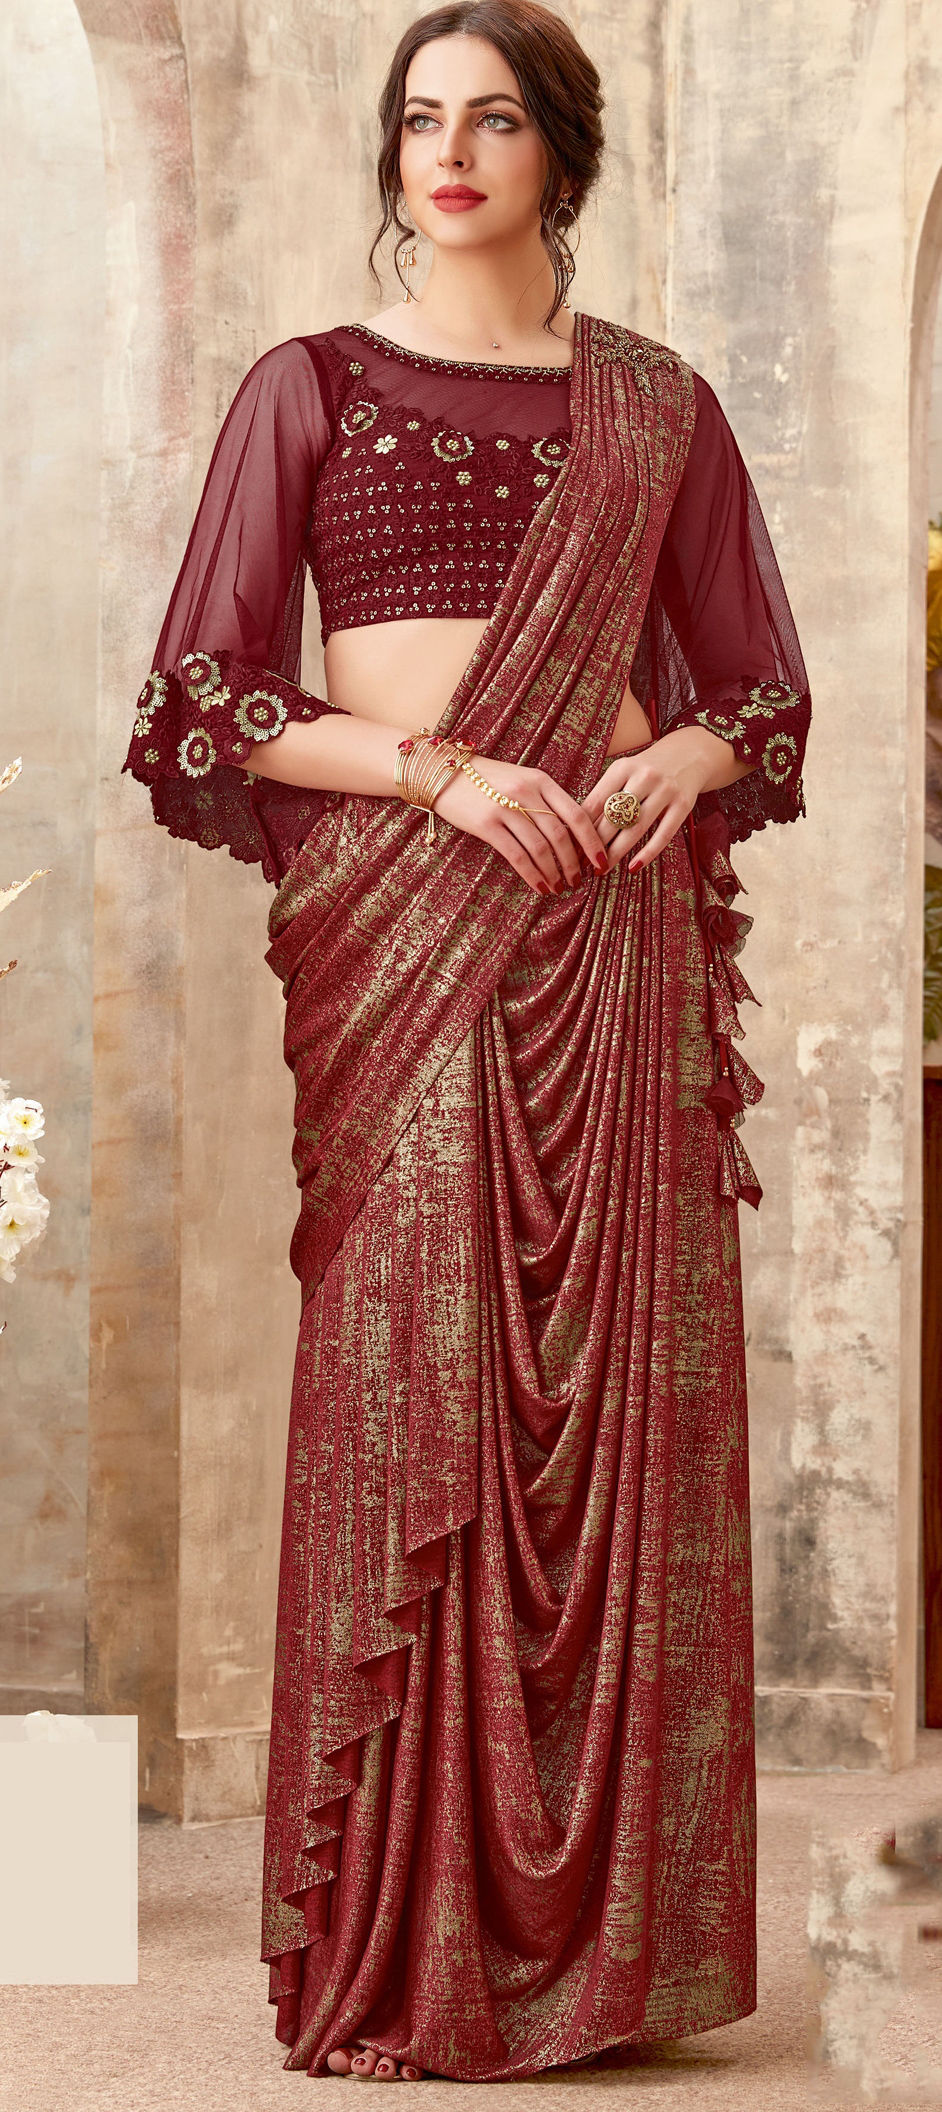 Slay in style on Karwa Chauth 2019 with Readymade Pre-stitched Sarees